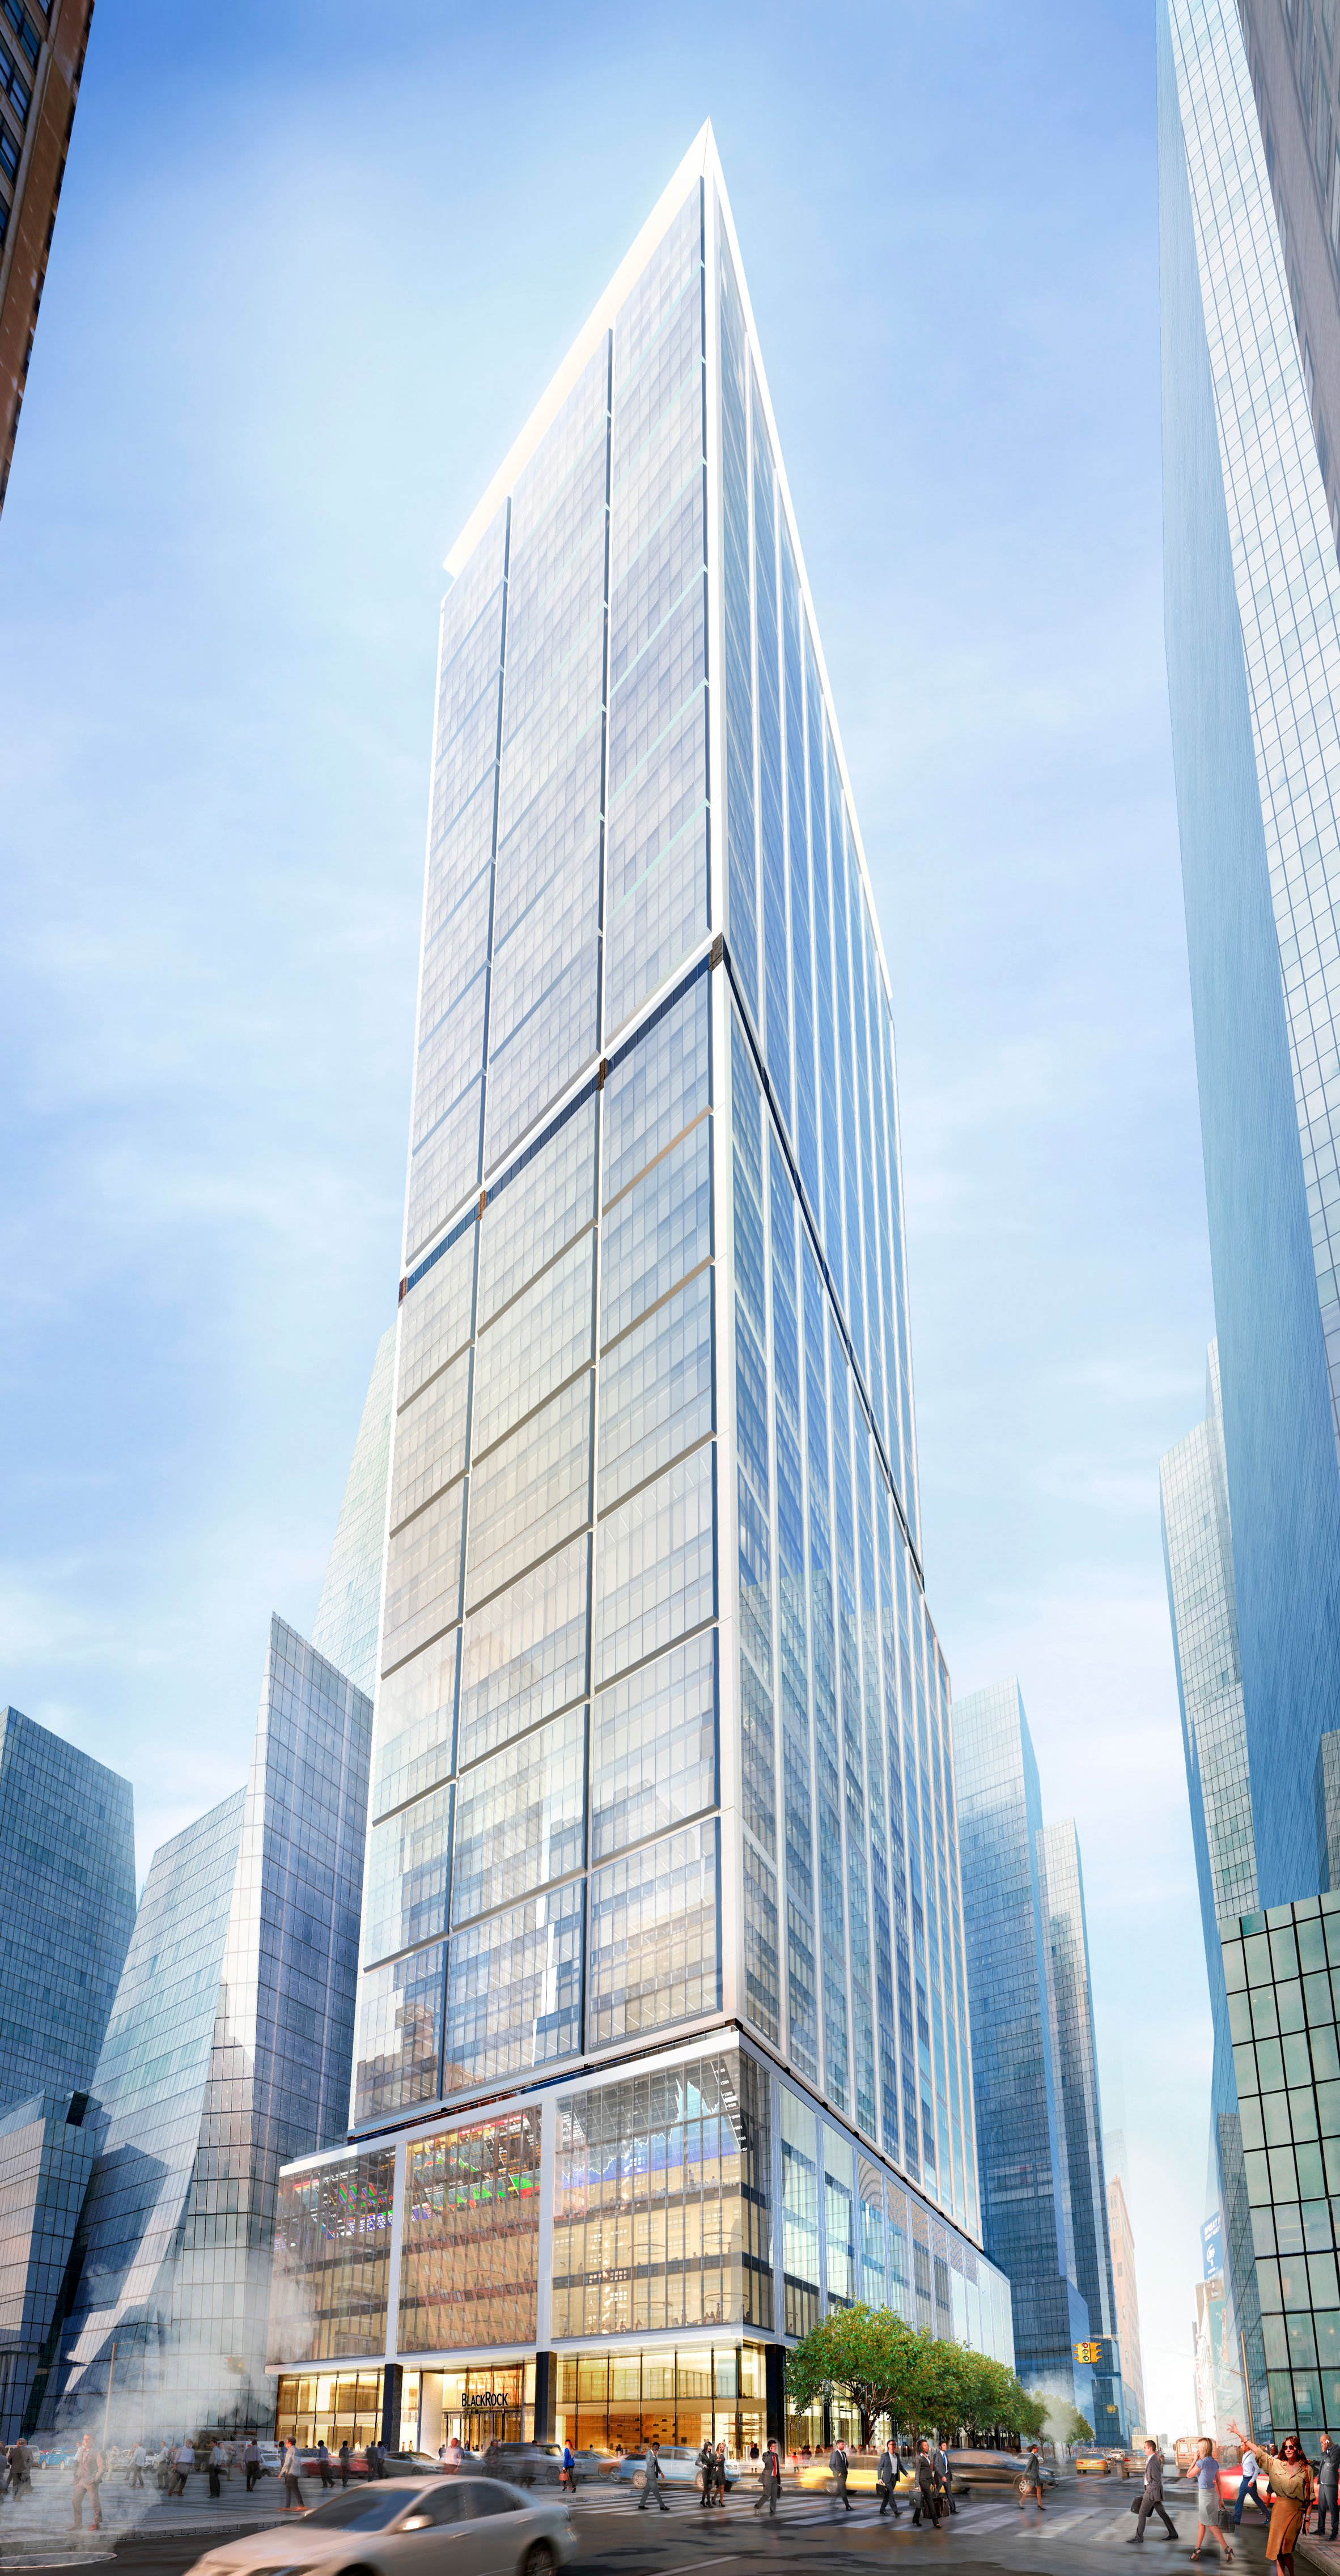 Foster + Partners skyscraper joins line-up at New York's Hudson Yards